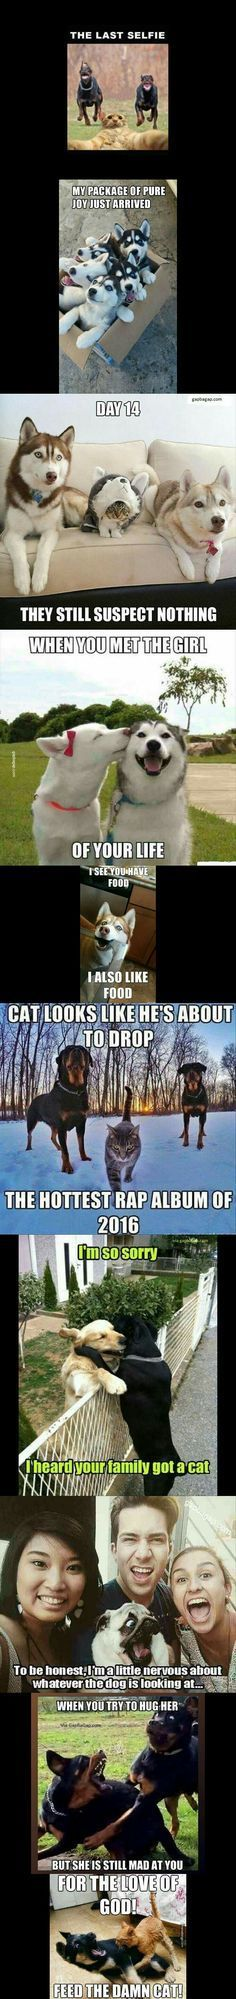 The 10 Funniest Memes ft. Funny Dogs and Cats # CatMemes- # catmemes # . The 10 Funniest Memes ft. Funny Dogs and Cats # catmemes Funny Animal Jokes, Funny Dog Memes, Funny Animal Pictures, Cute Funny Animals, Animal Memes, Cat Memes, Funny Cute, Funny Dogs, Funniest Memes